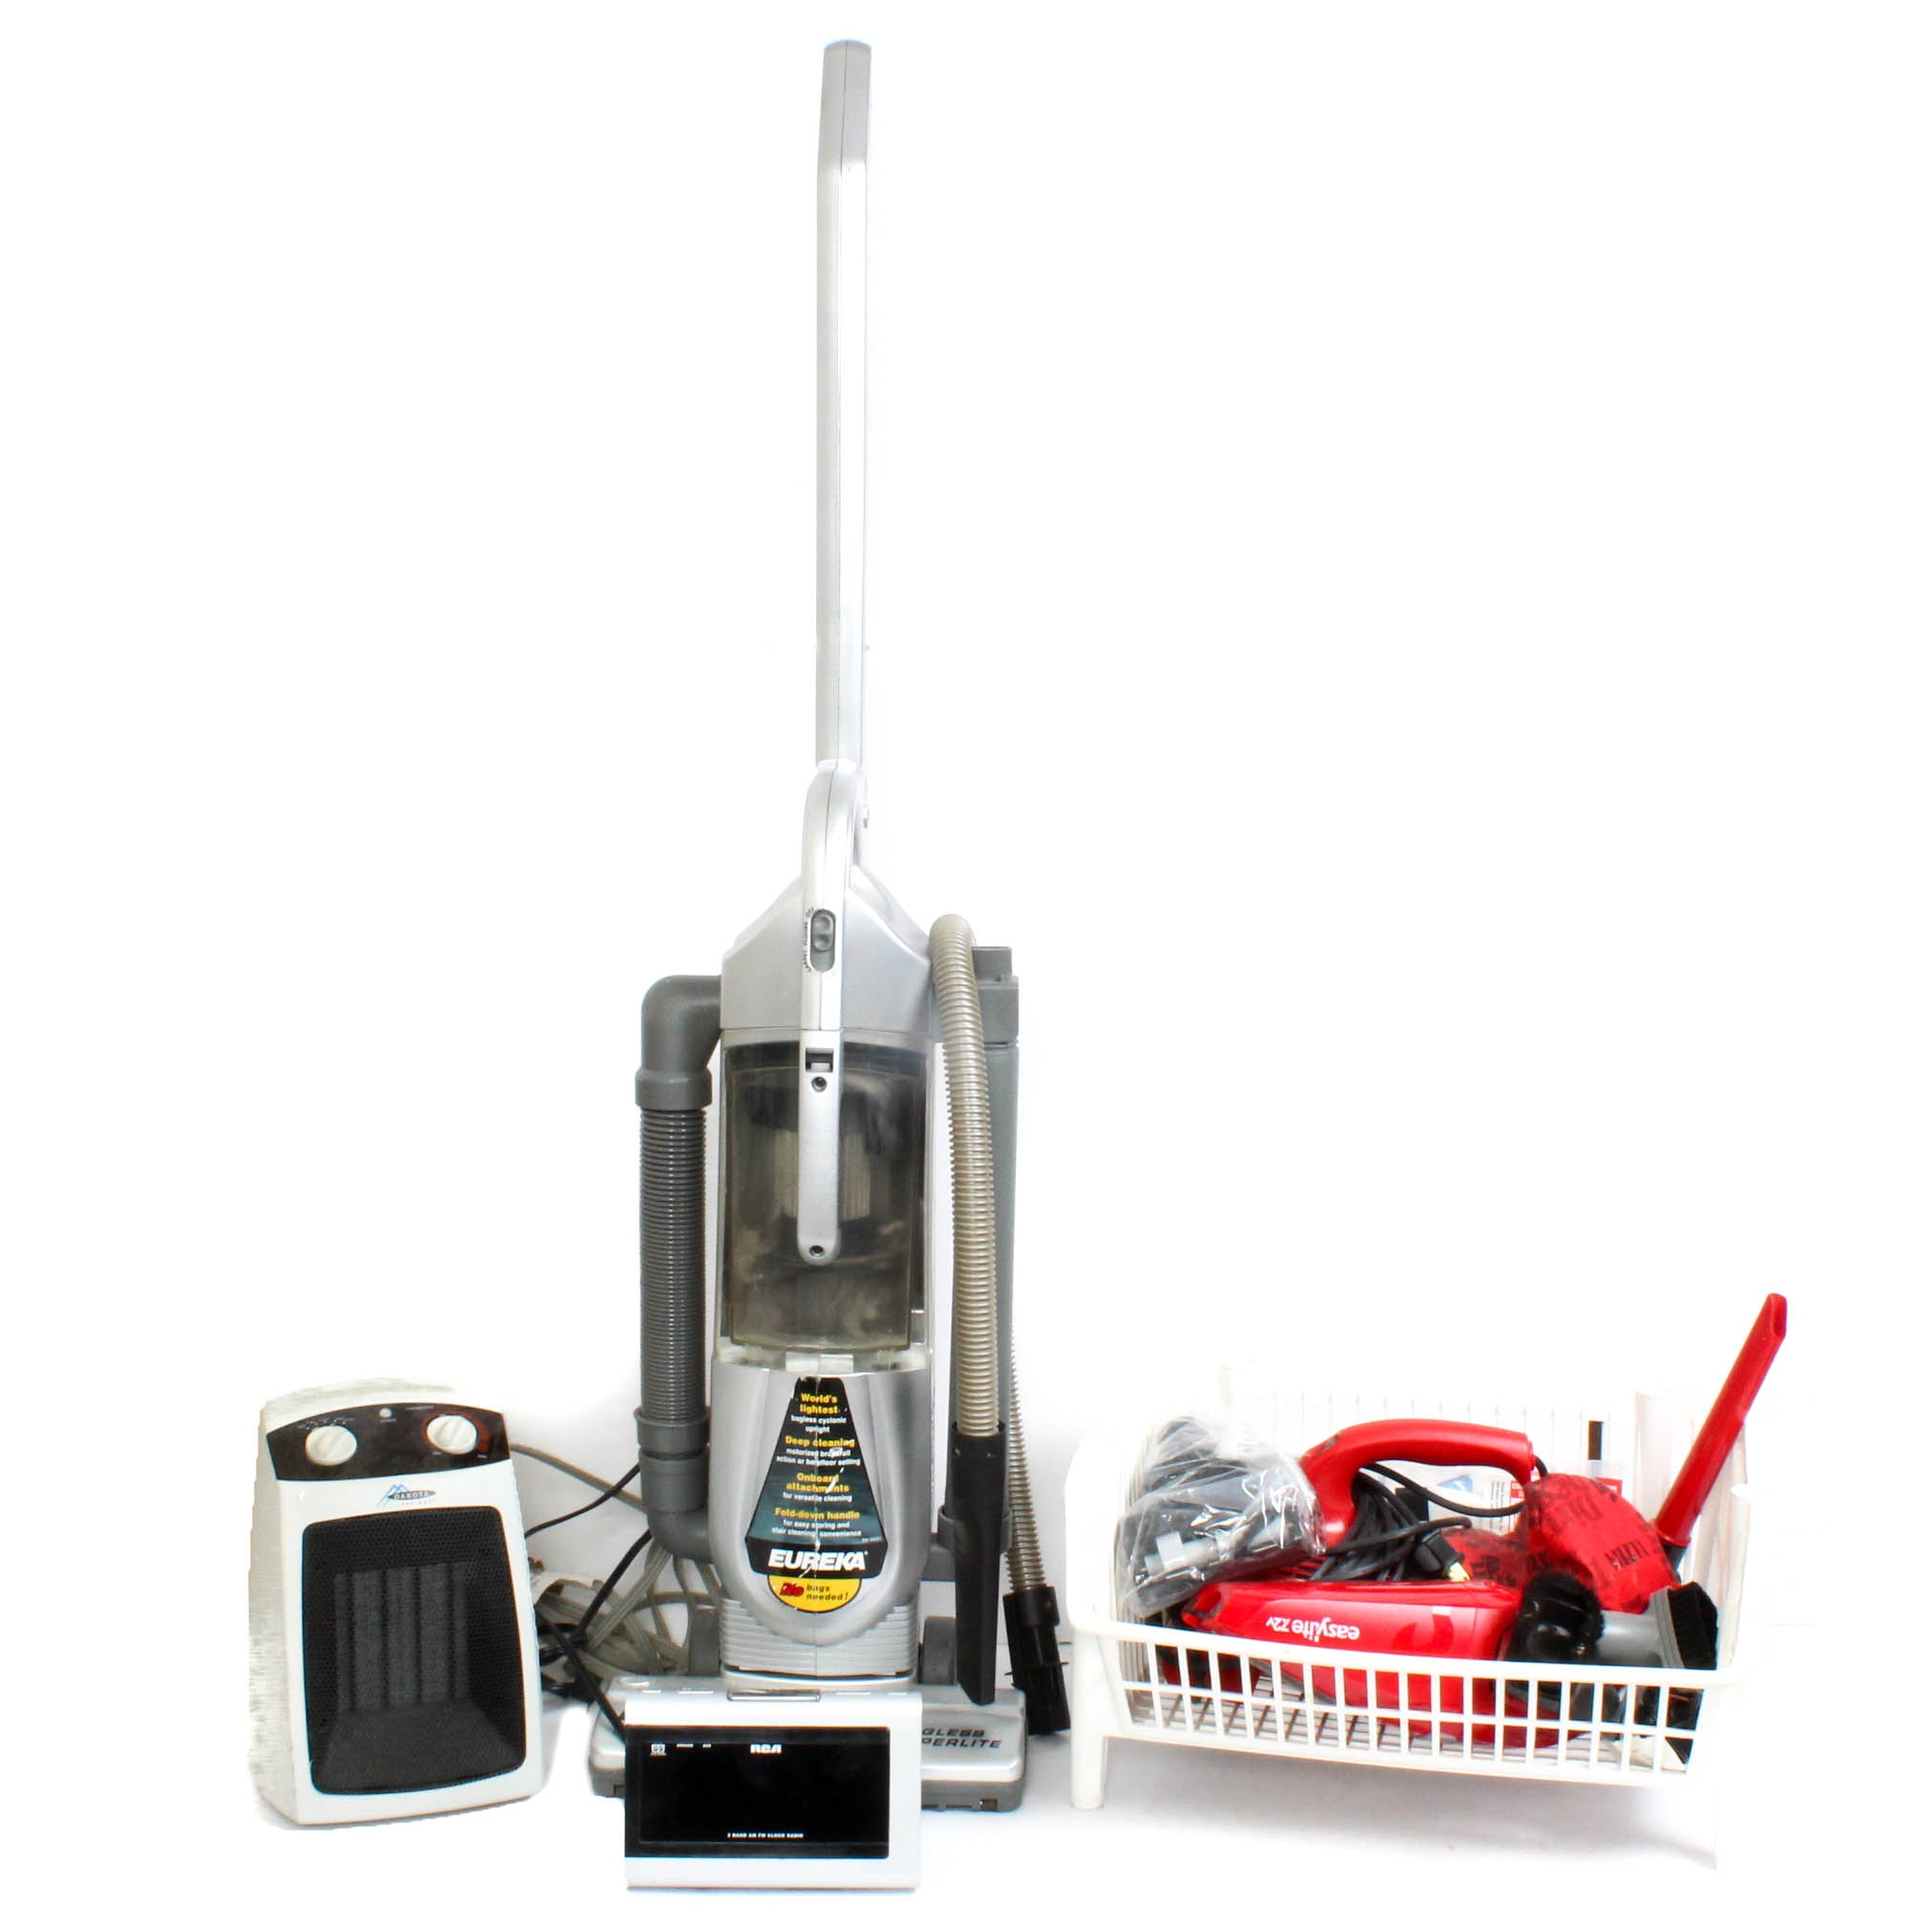 Vacuum Cleaner and other Small Appliances Assortment